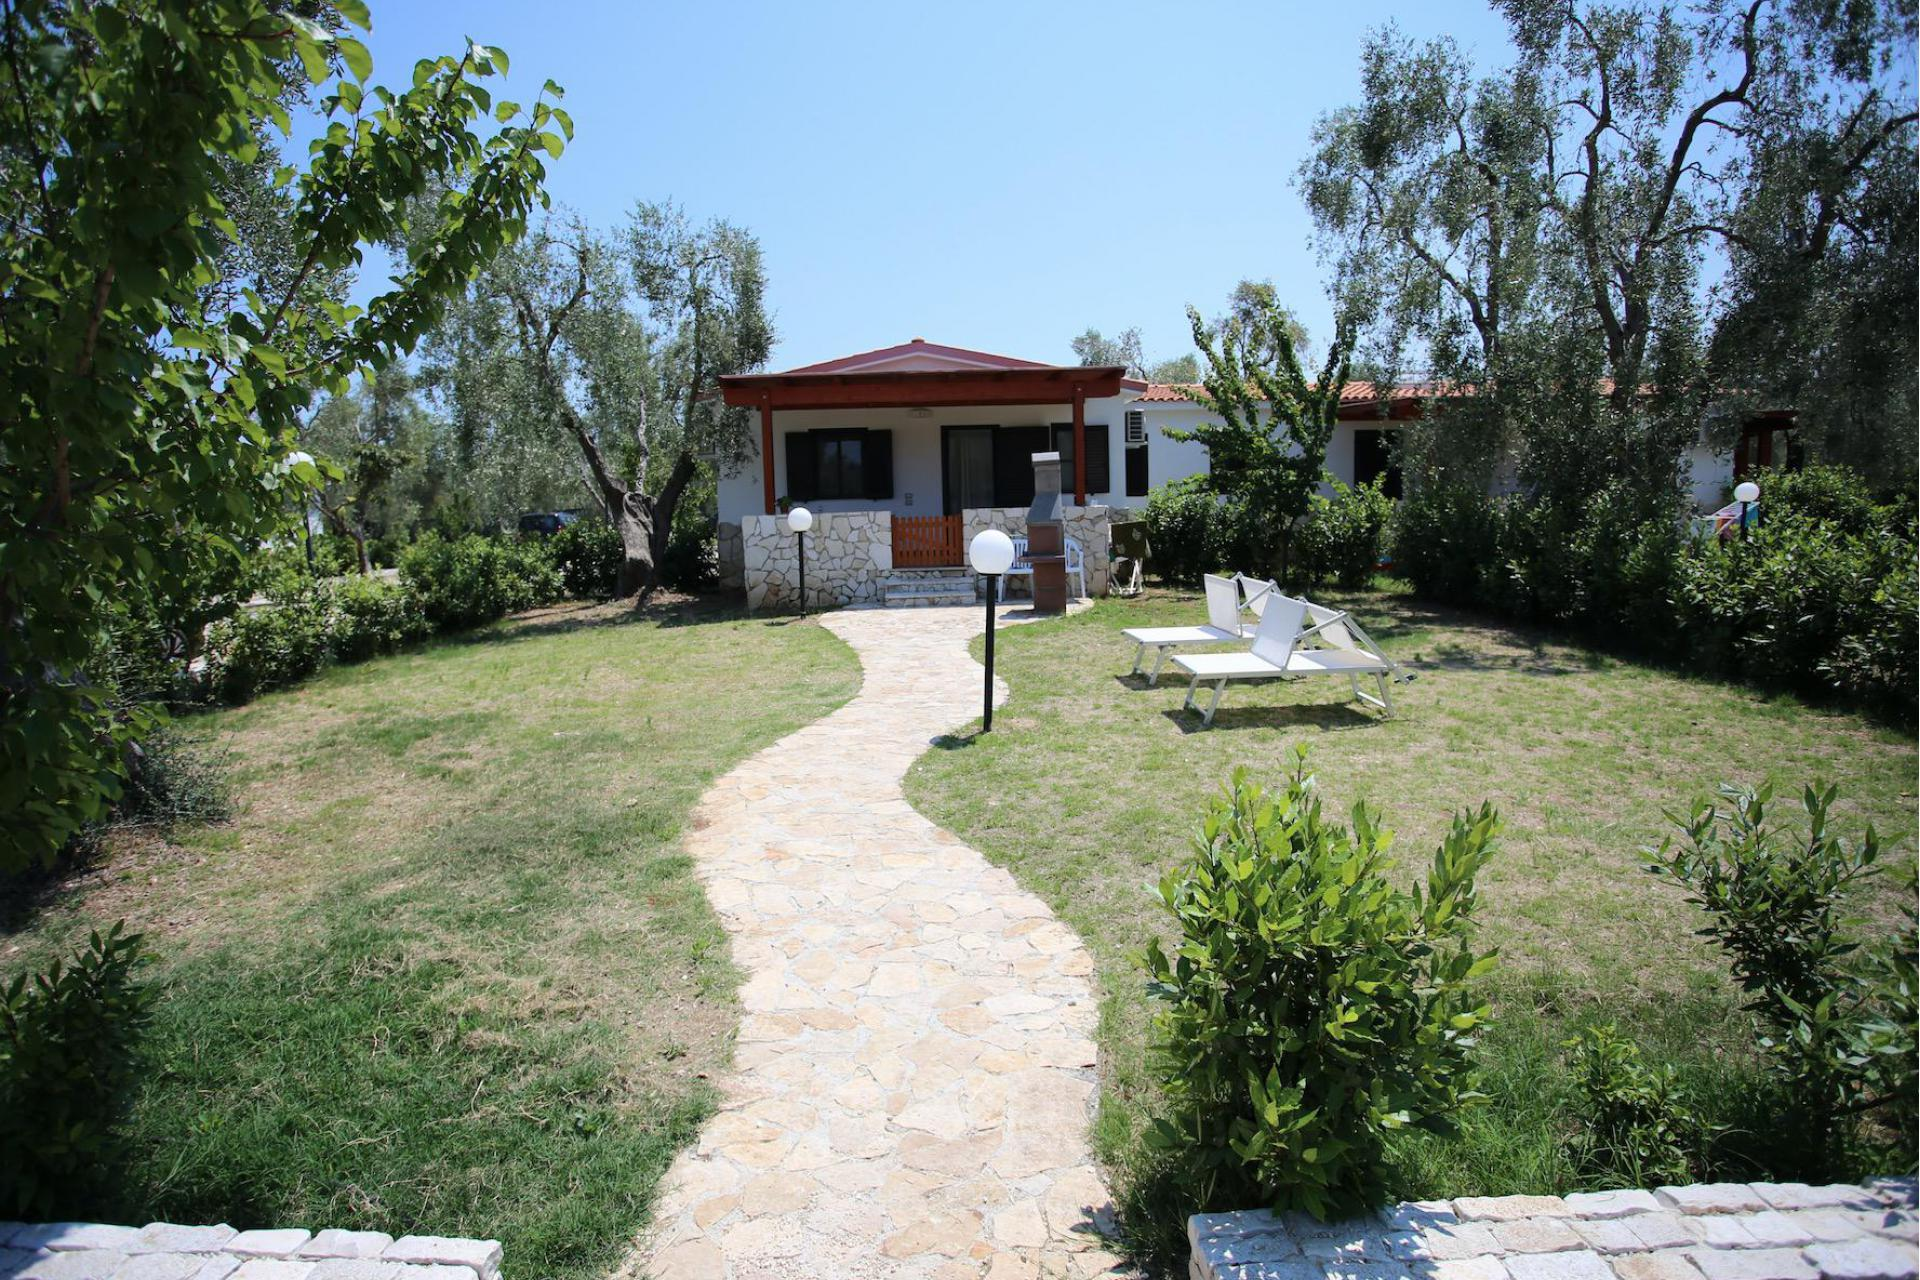 Agriturismo Puglia Child-friendly Agriturismo in Puglia by the sea and beach